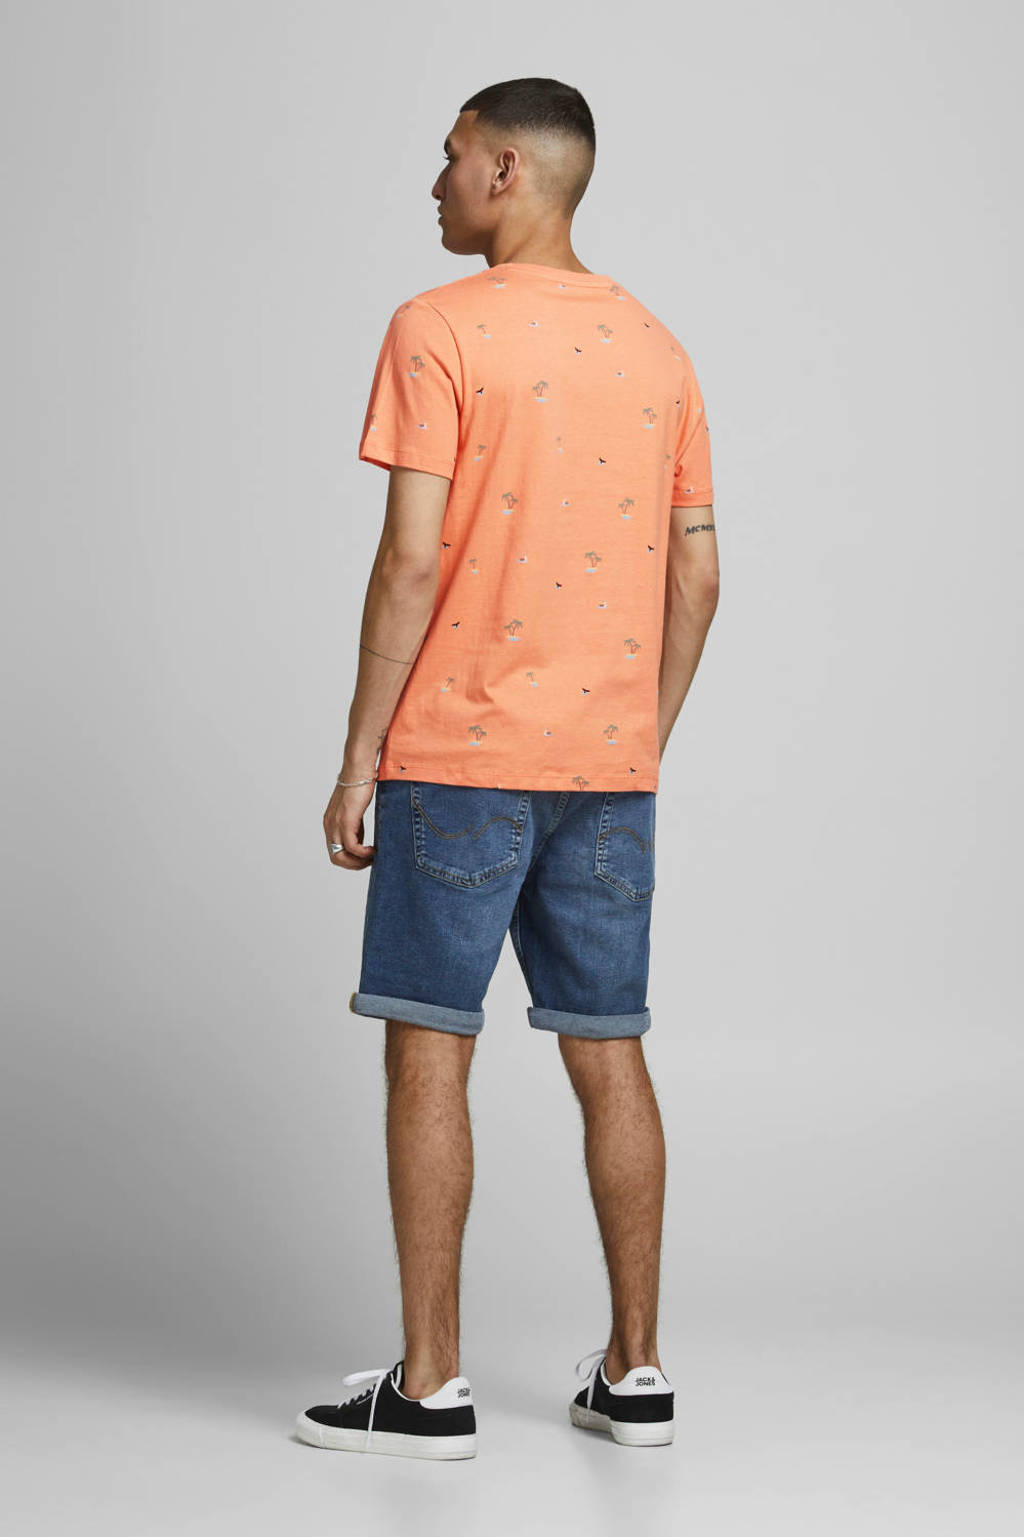 JACK & JONES ORIGINALS T-shirt Playa met all over print koraalrood, Koraalrood